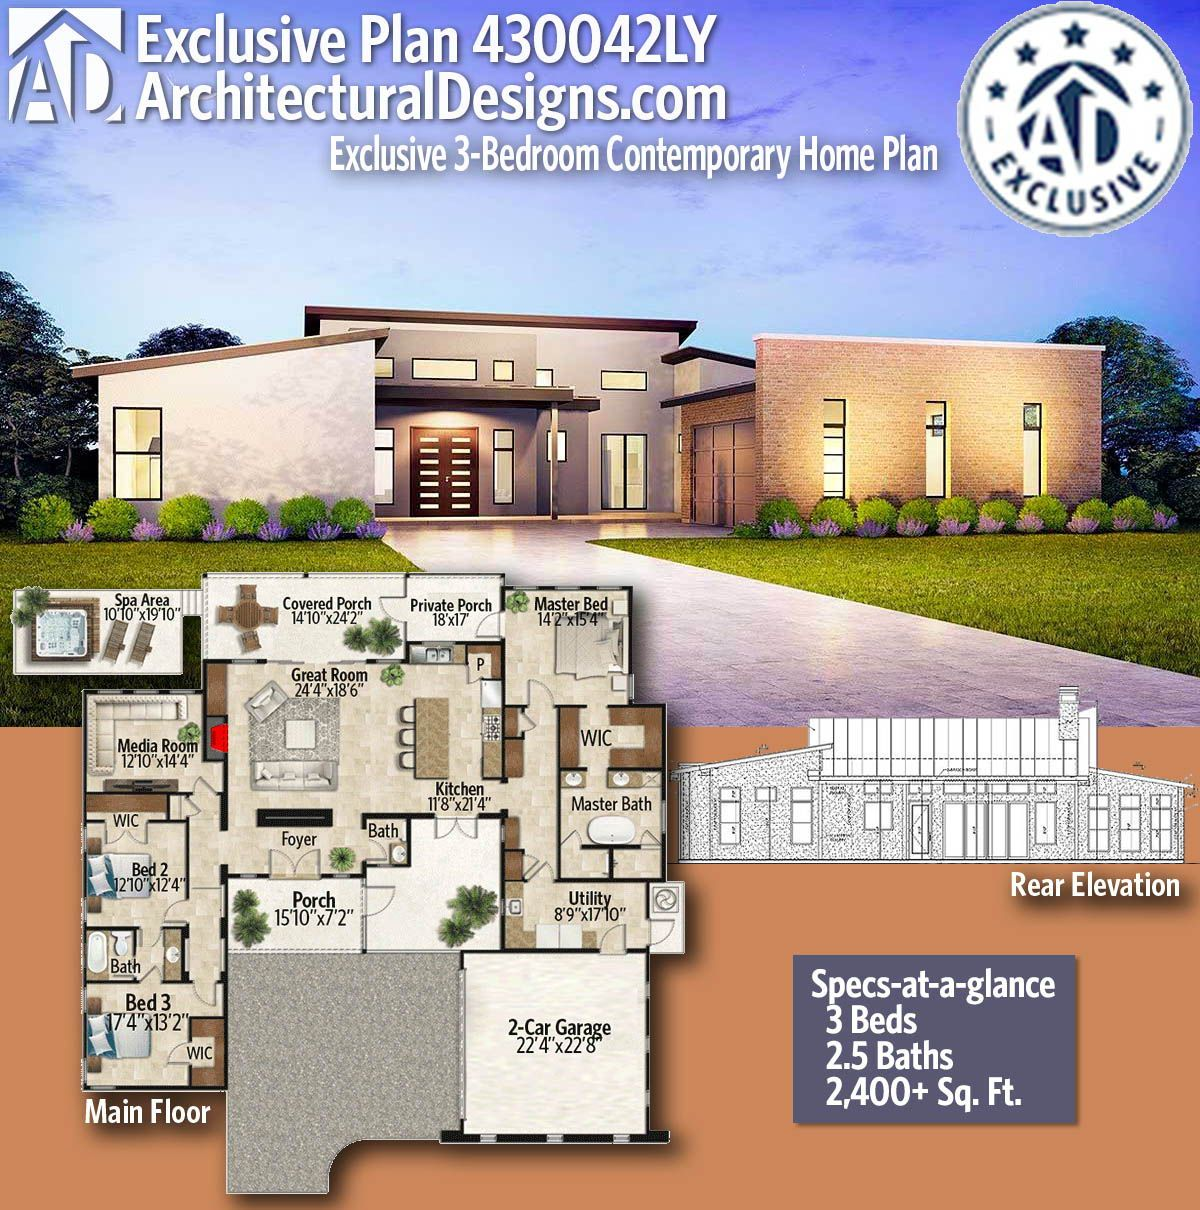 Plan 430042LY: Exclusive 3-Bedroom Contemporary Home Plan ...